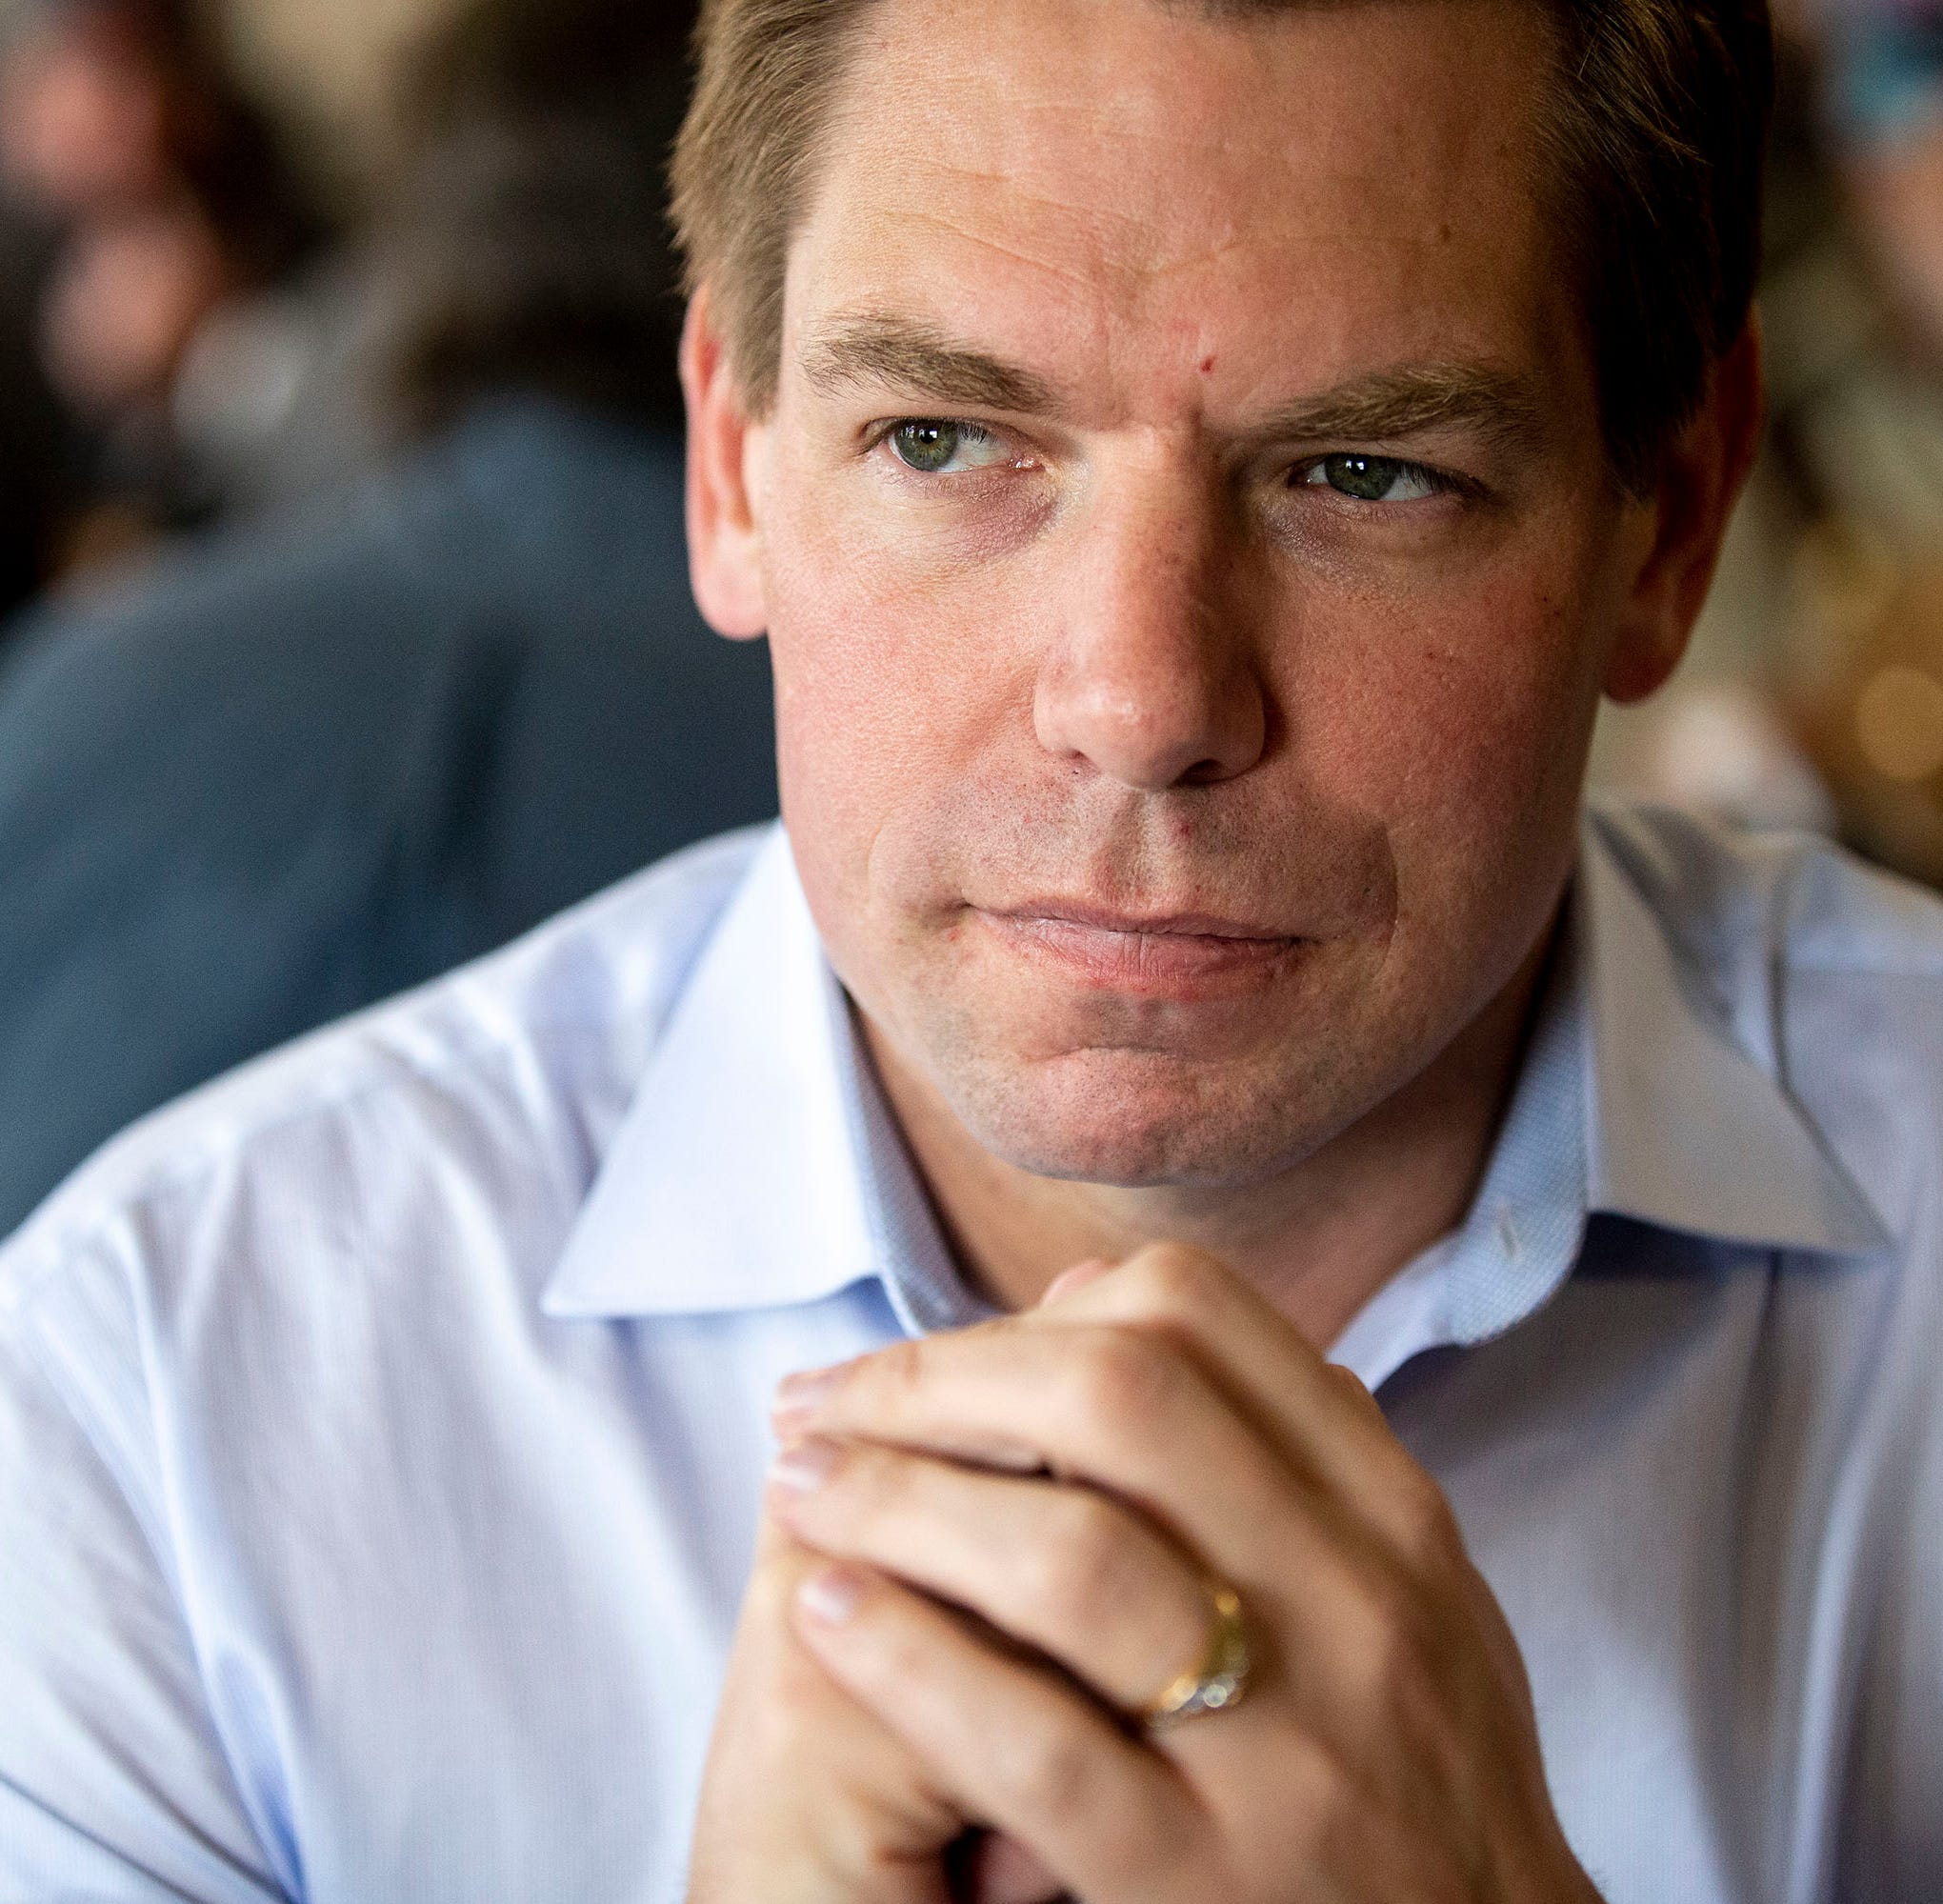 As Iowa-born Eric Swalwell launches 2020 presidential campaign, says, 'I want Iowans to know: I see you'